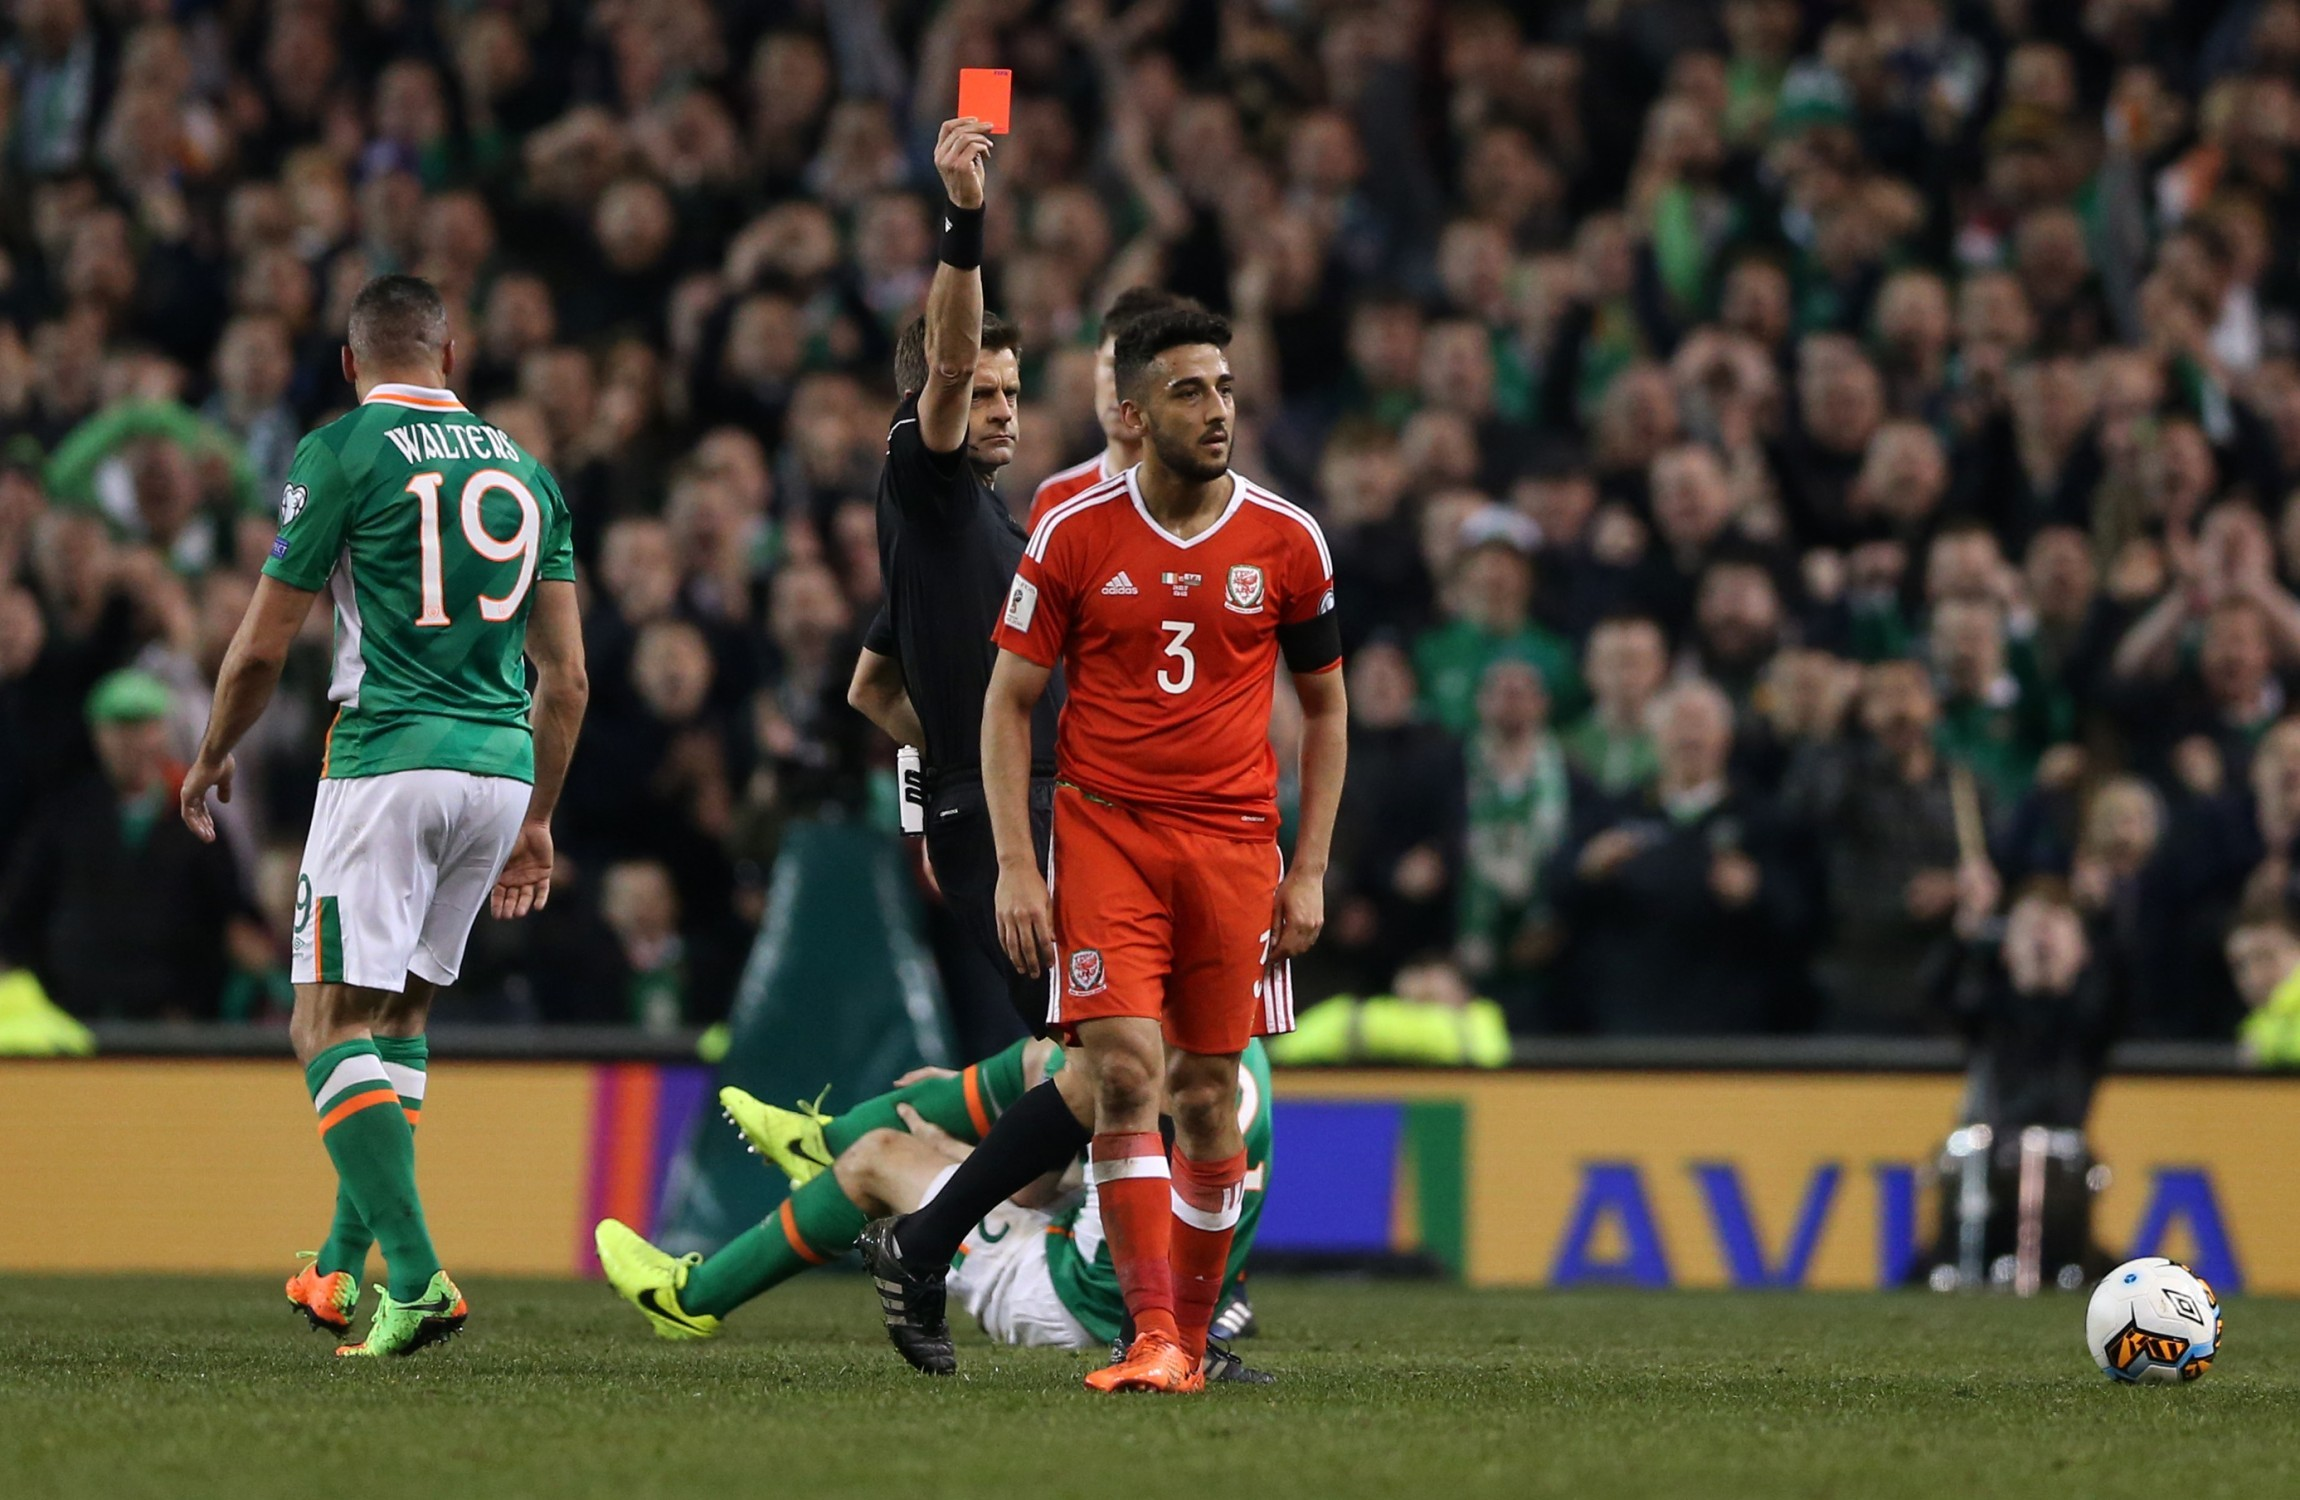 Martin O'Neill Urges Seamus Coleman To Take Inspiration From Henrik Larsson